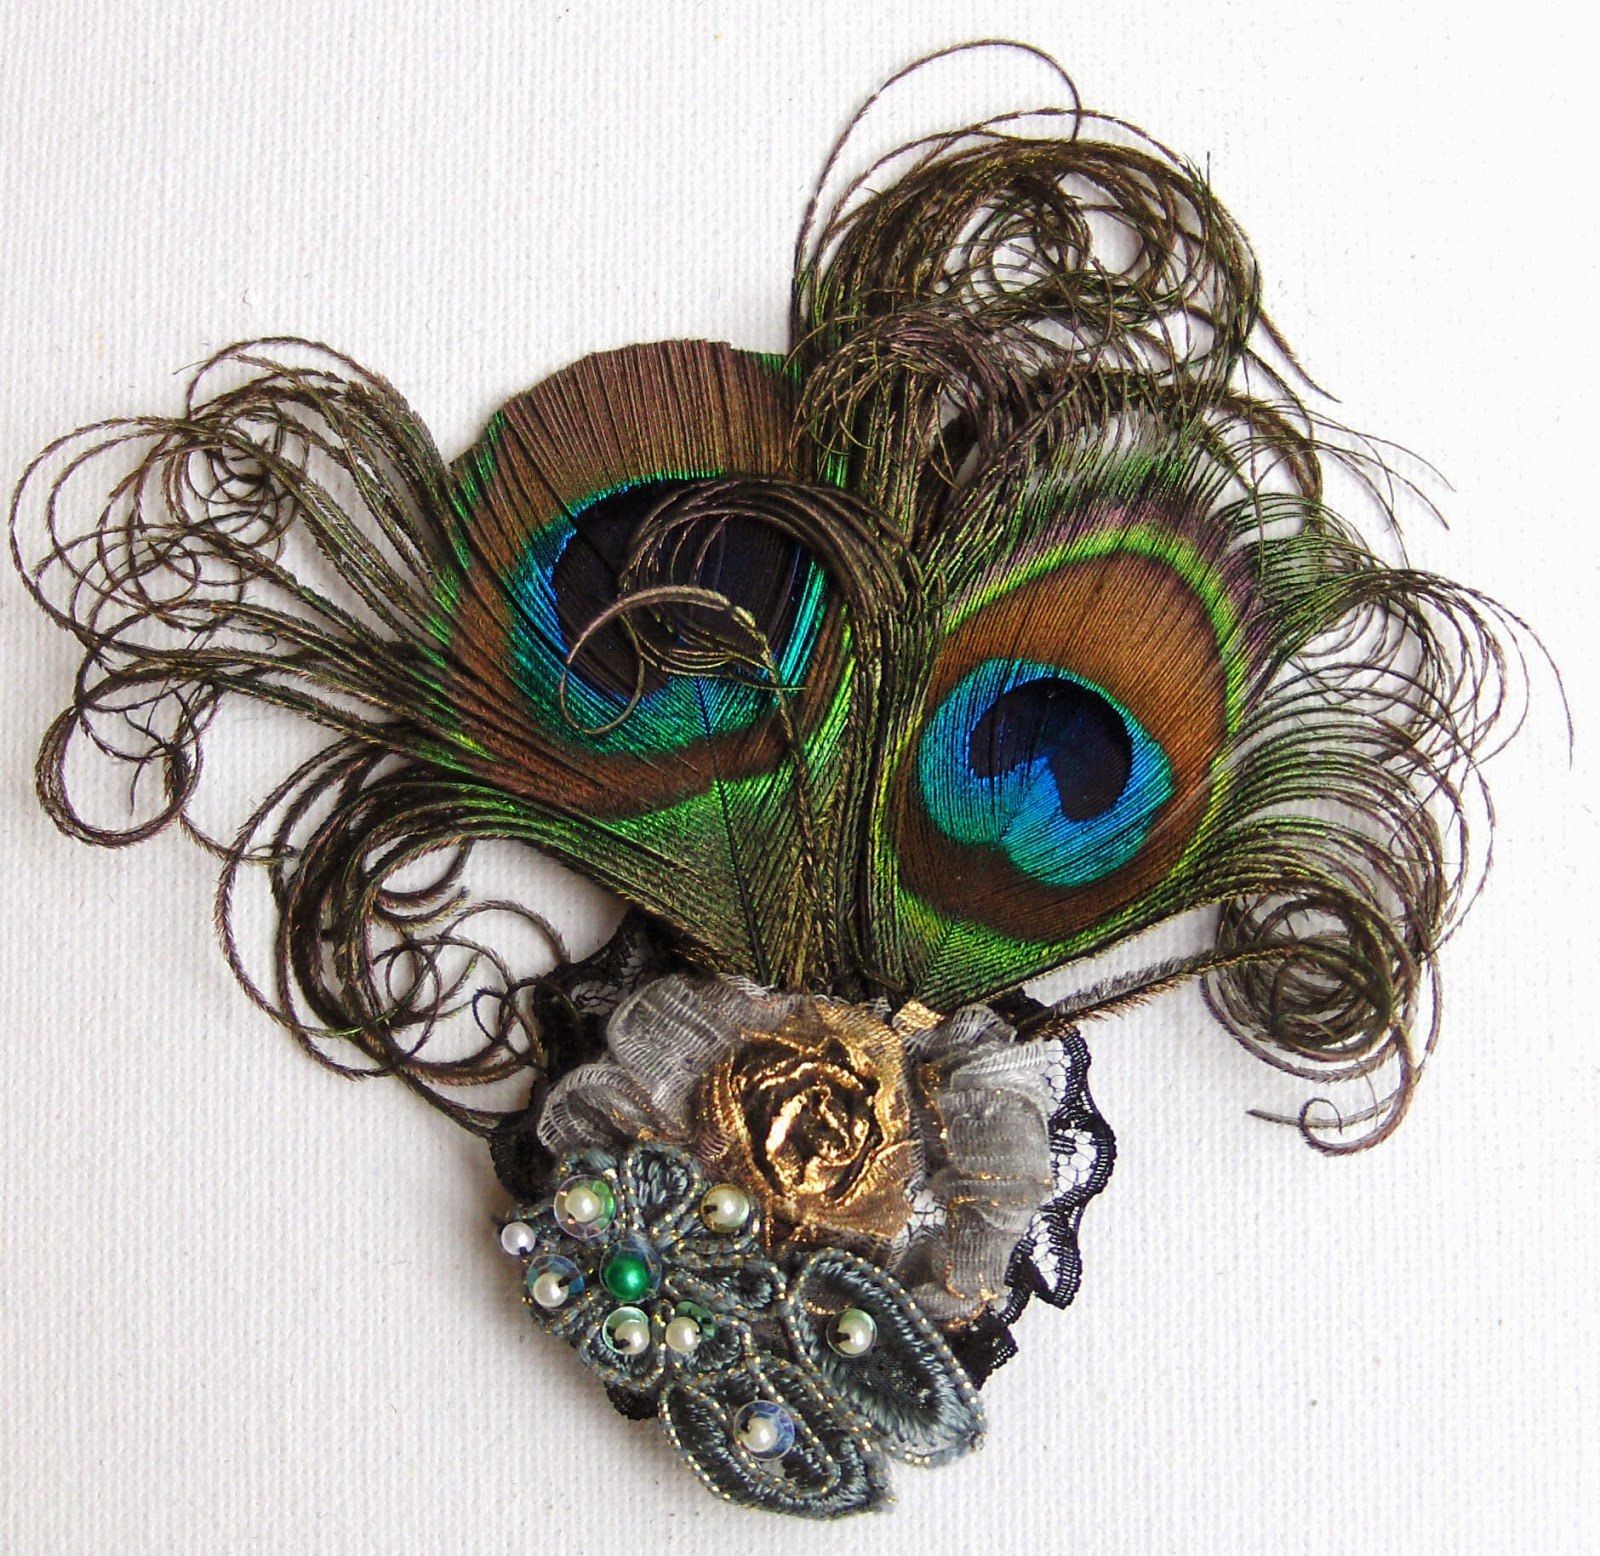 http://folksy.com/items/653352-Sweet-little-Peacock-hair-clip-barrette